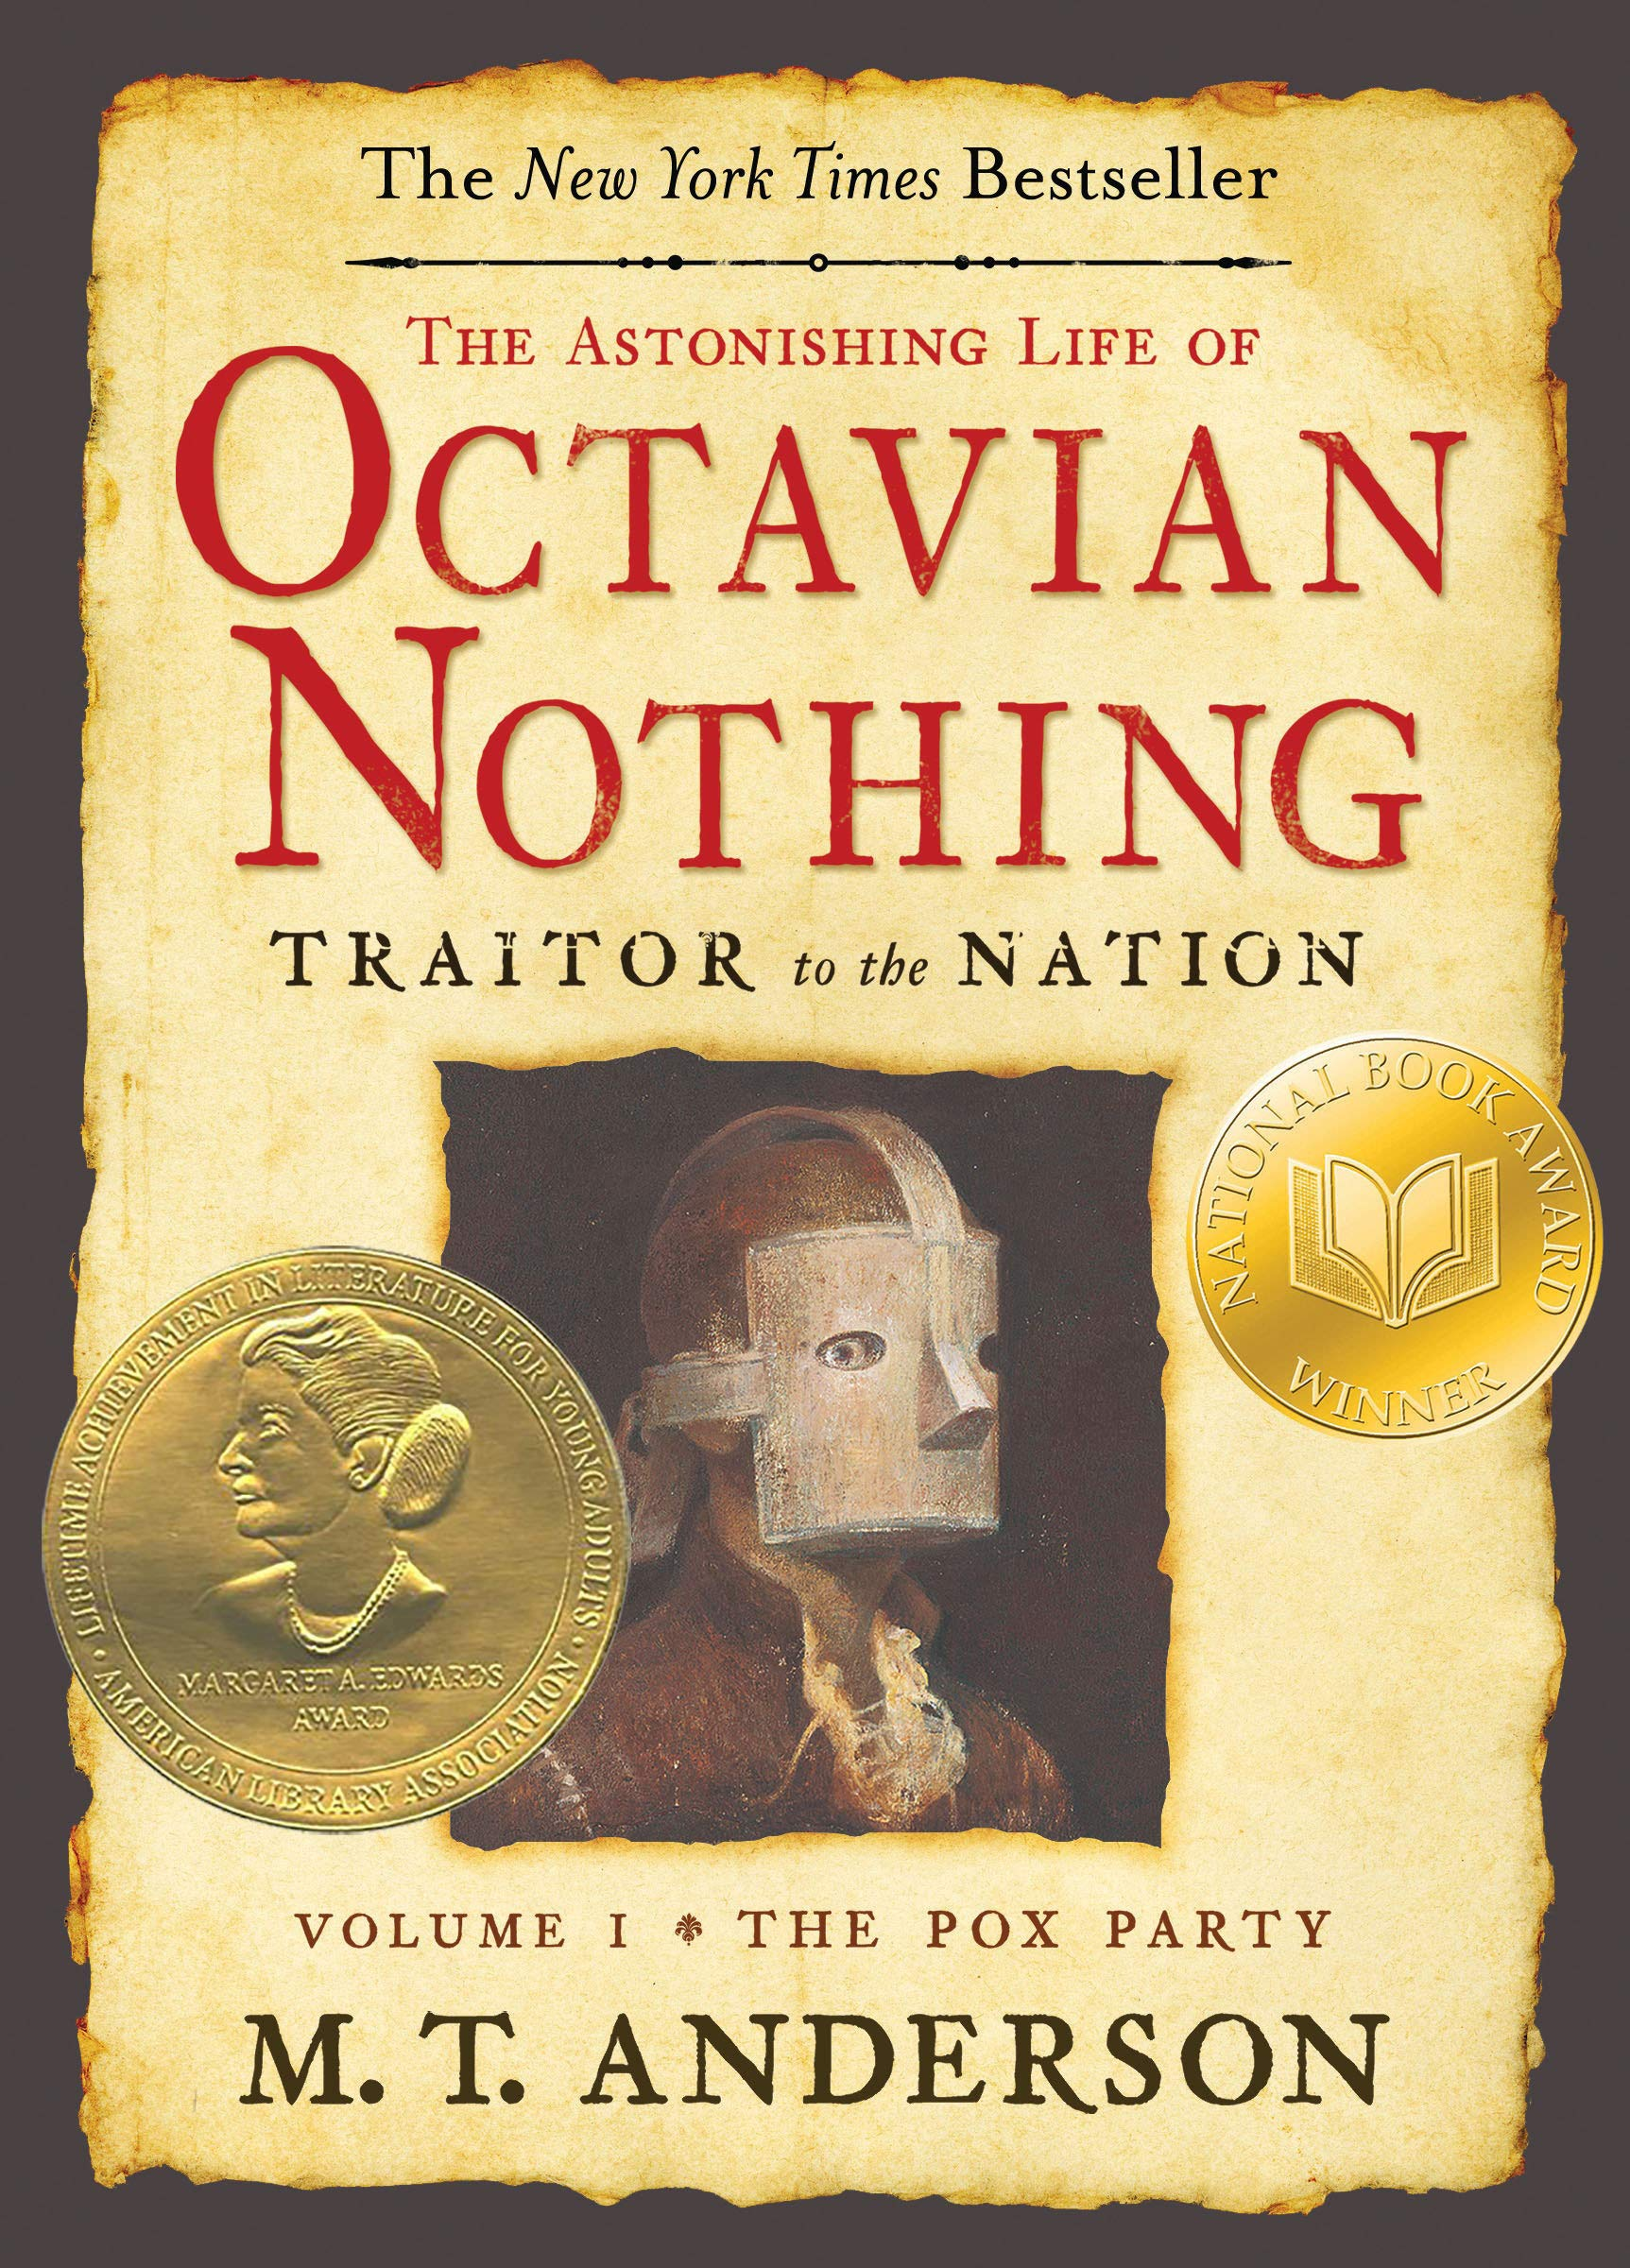 Black history books The Astonishing Life of Octavian Nothing, Traitor to the Nation, Volume One: The Pox Party